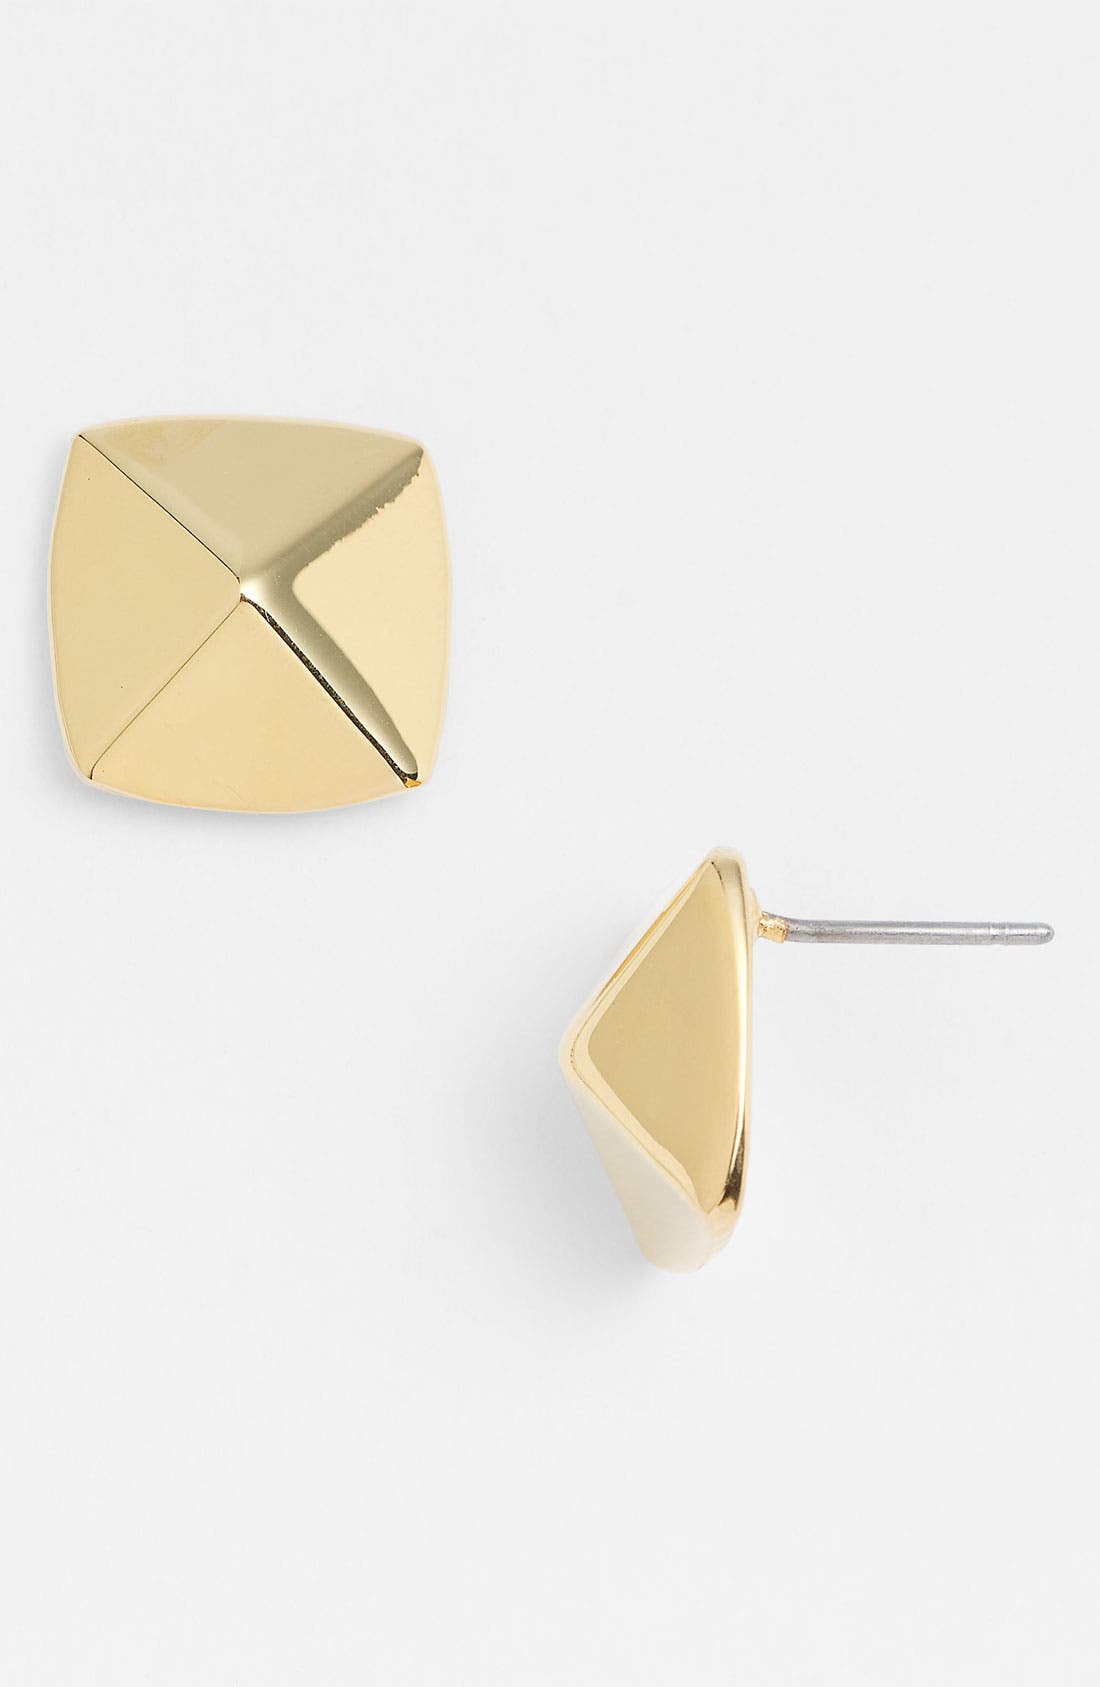 Alternate Image 1 Selected - Vince Camuto 'Basics' Small Pyramid Stud Earrings